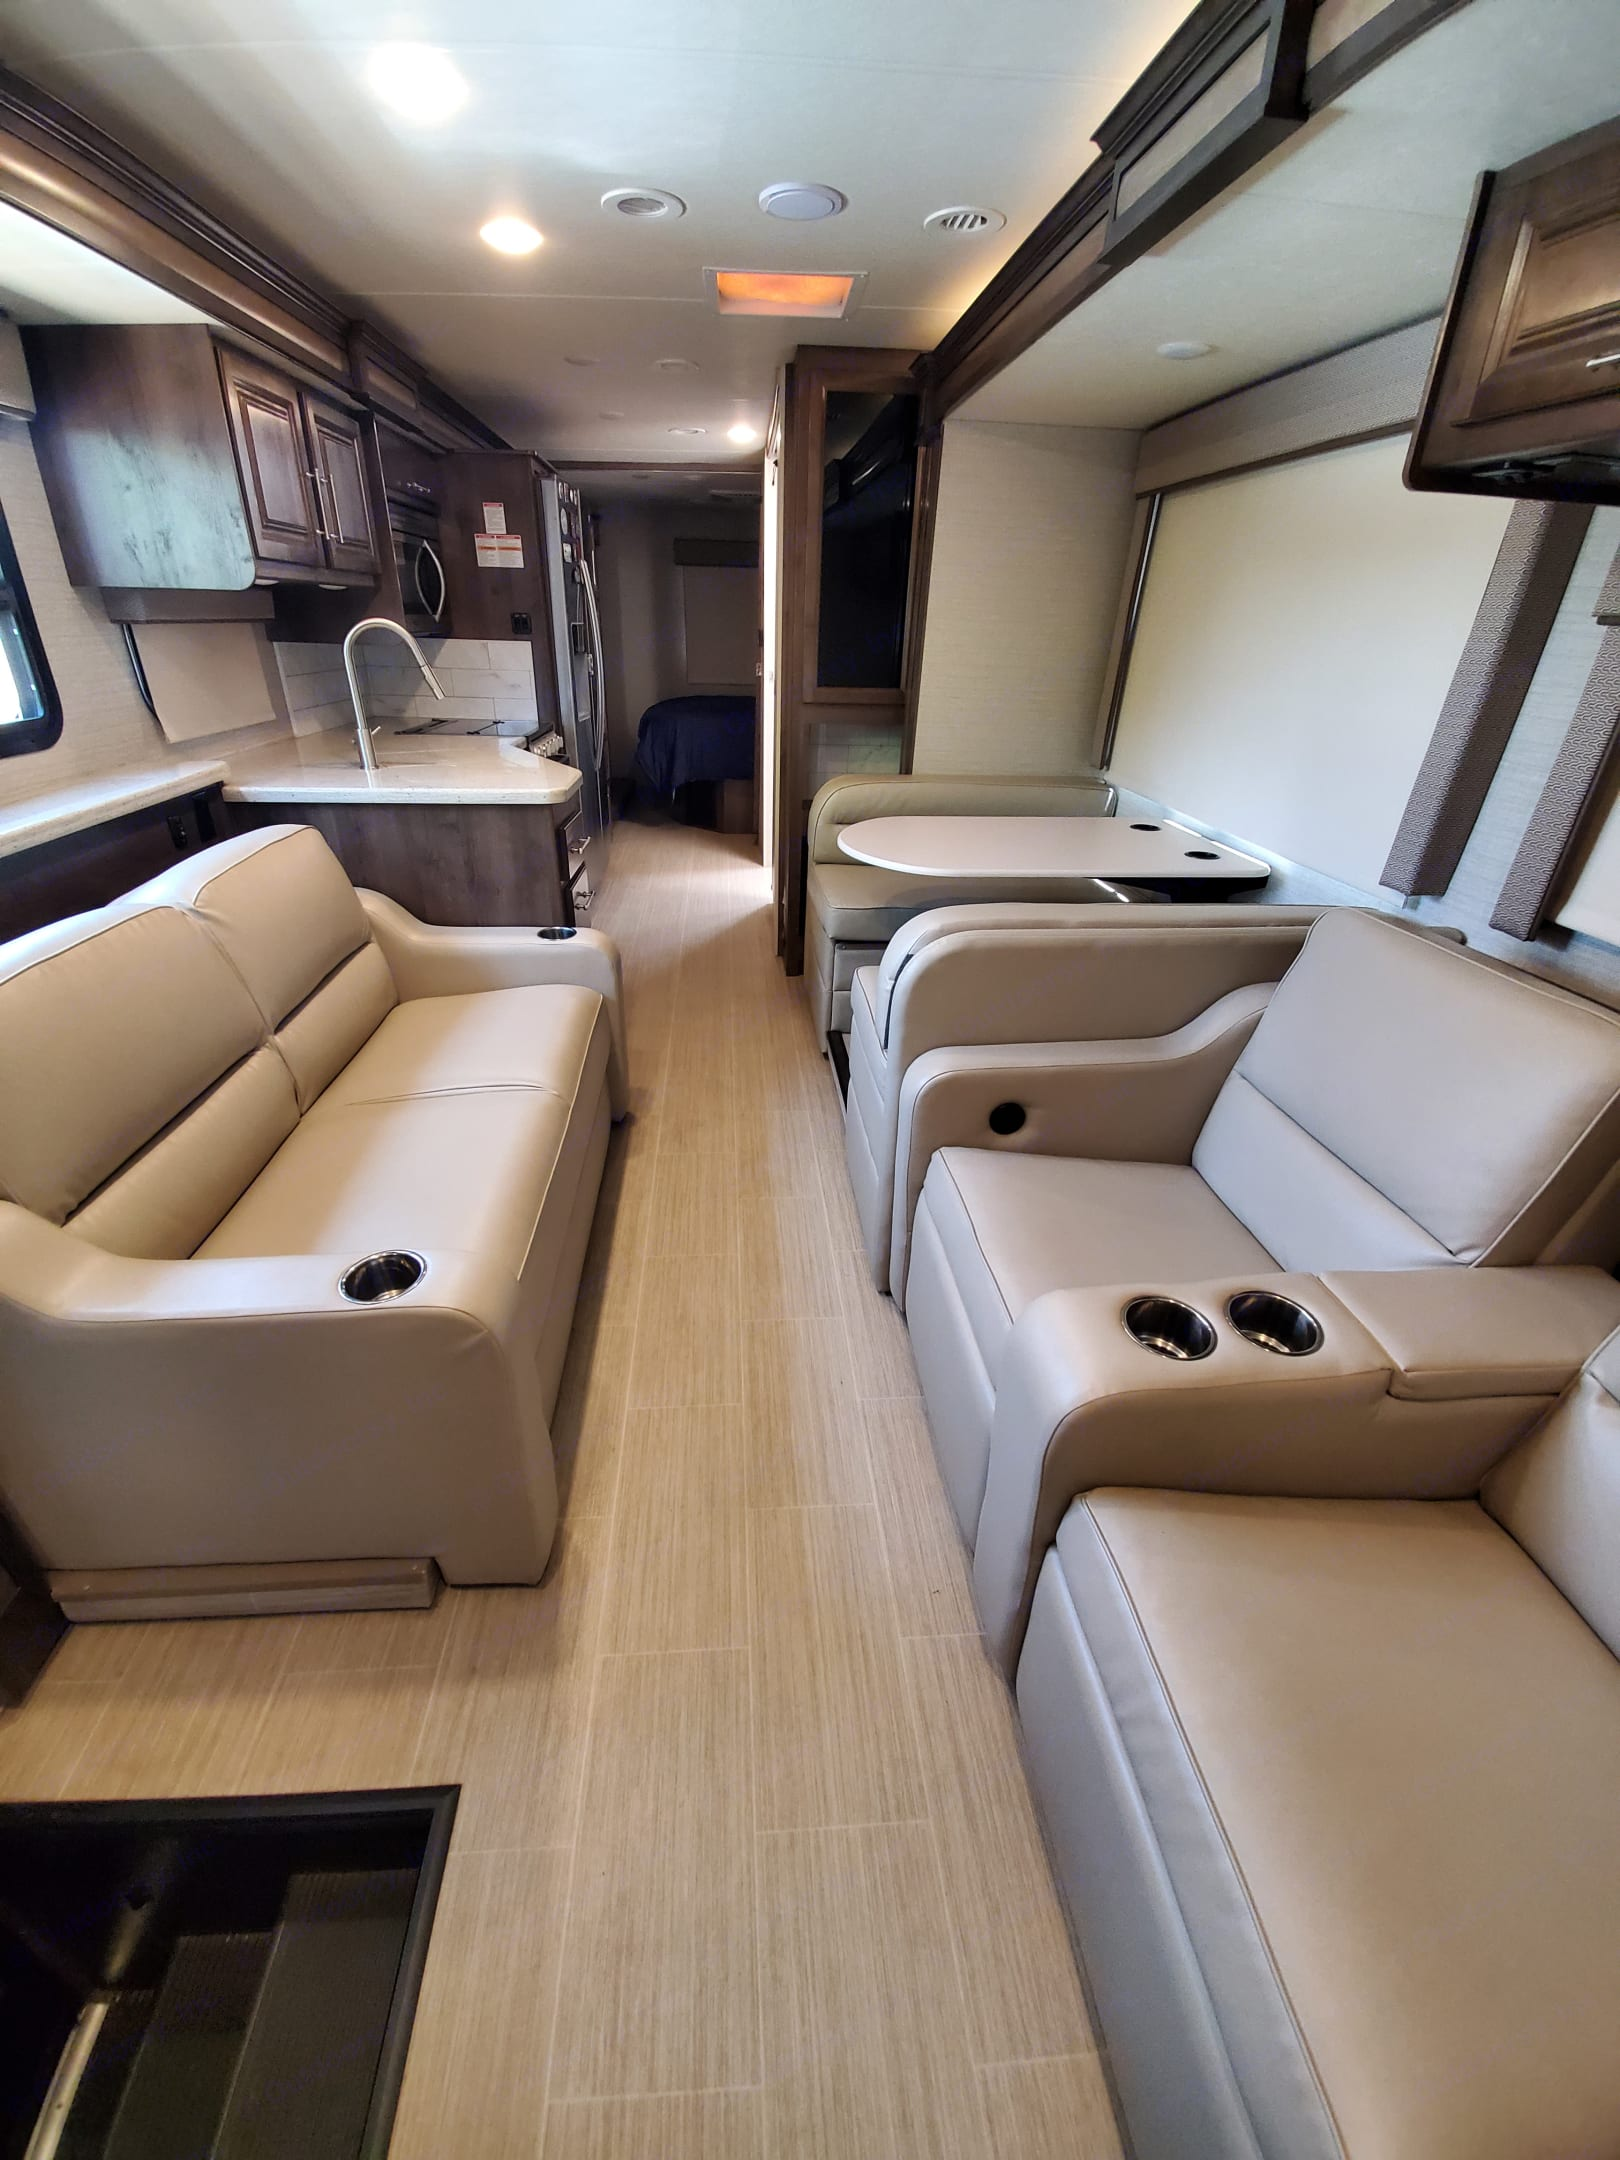 Plenty of seating for the family. Entegra Coach Vision XL 2020